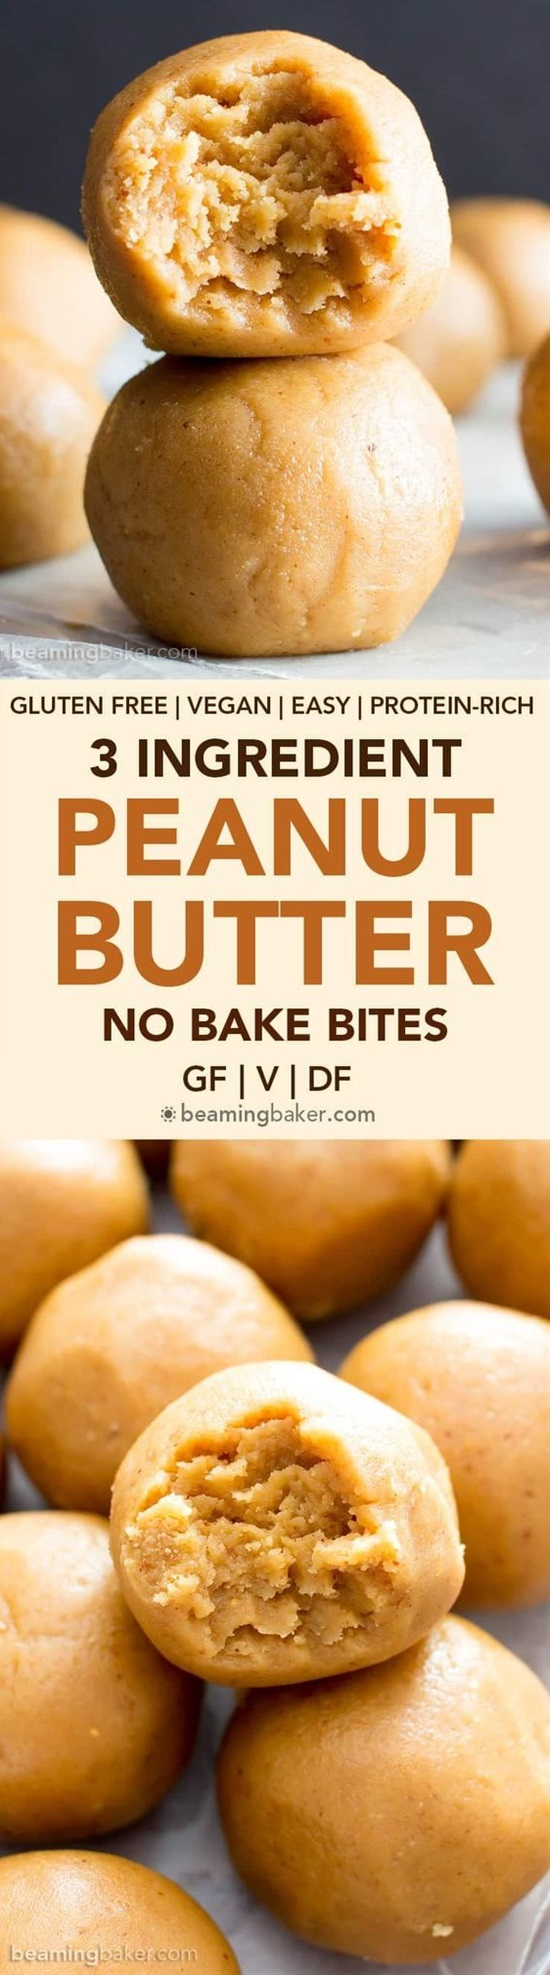 15 Things You Can Do With Peanut Butter - Peanut Butter recipes, Peanut Butter desserts, peanut butter, Desserts with Peanut Butter